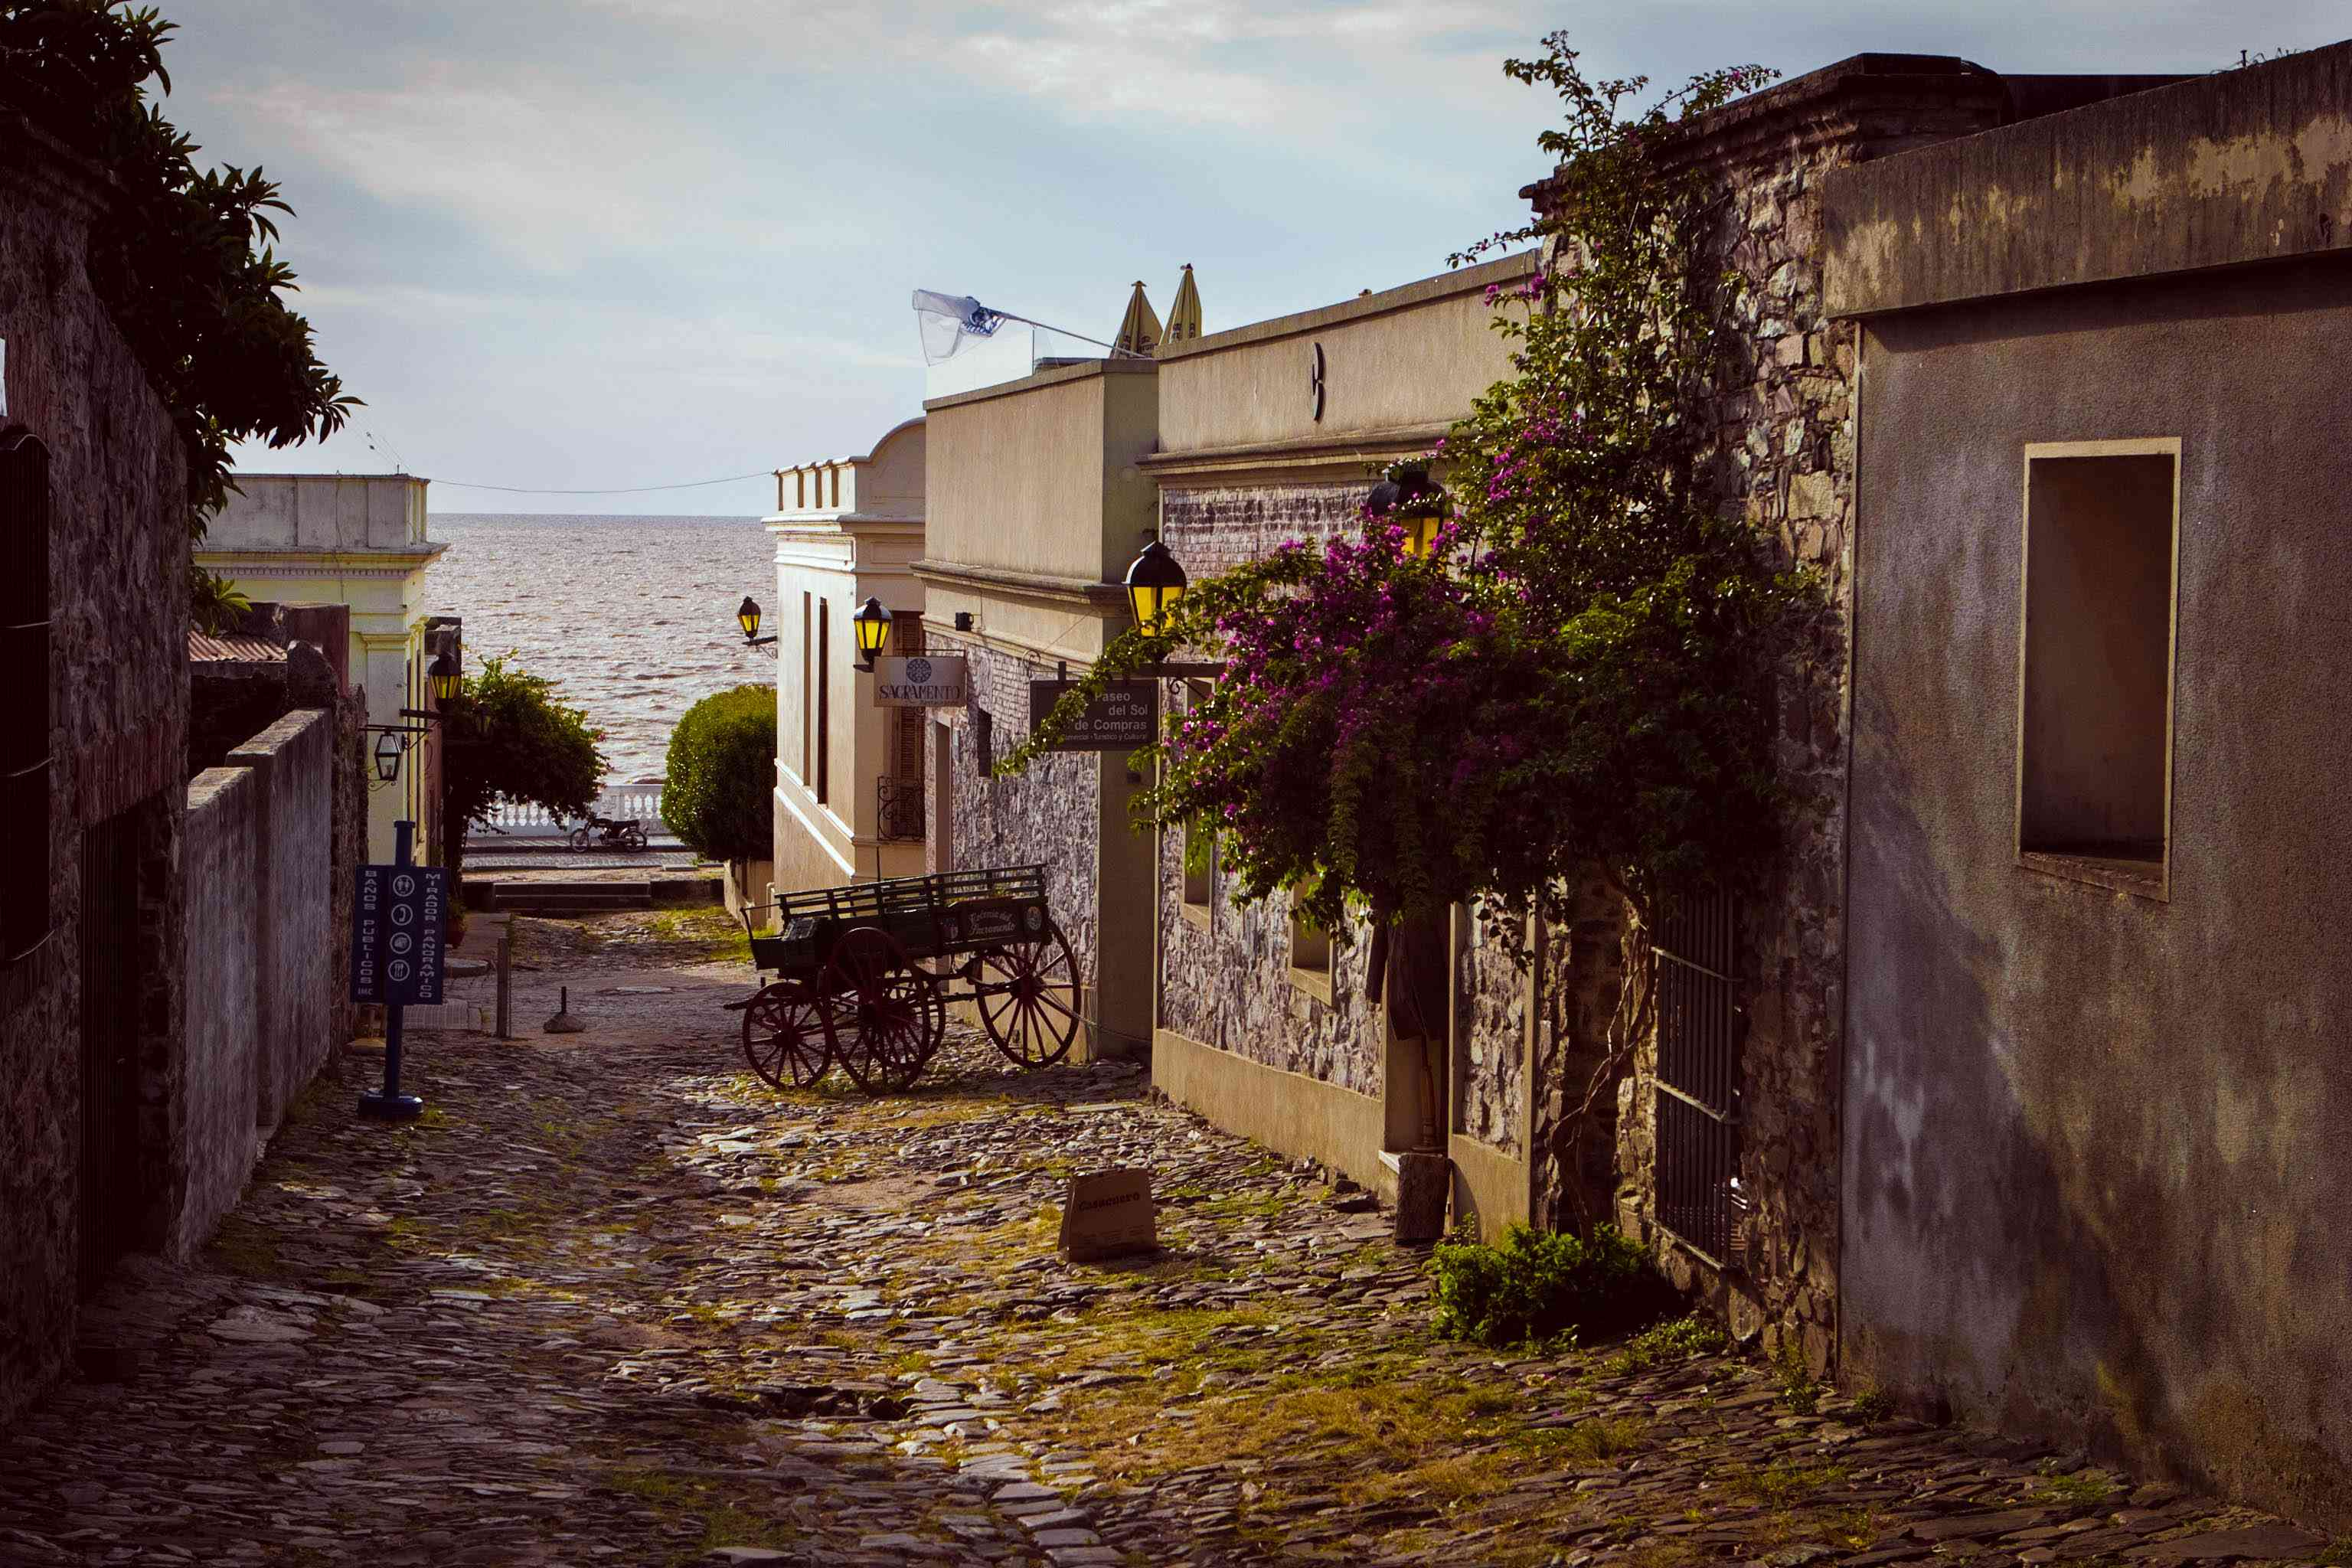 Old houses and a coach in the street of the historical city in southwestern of Uruguay. Unesco World Heritage town.